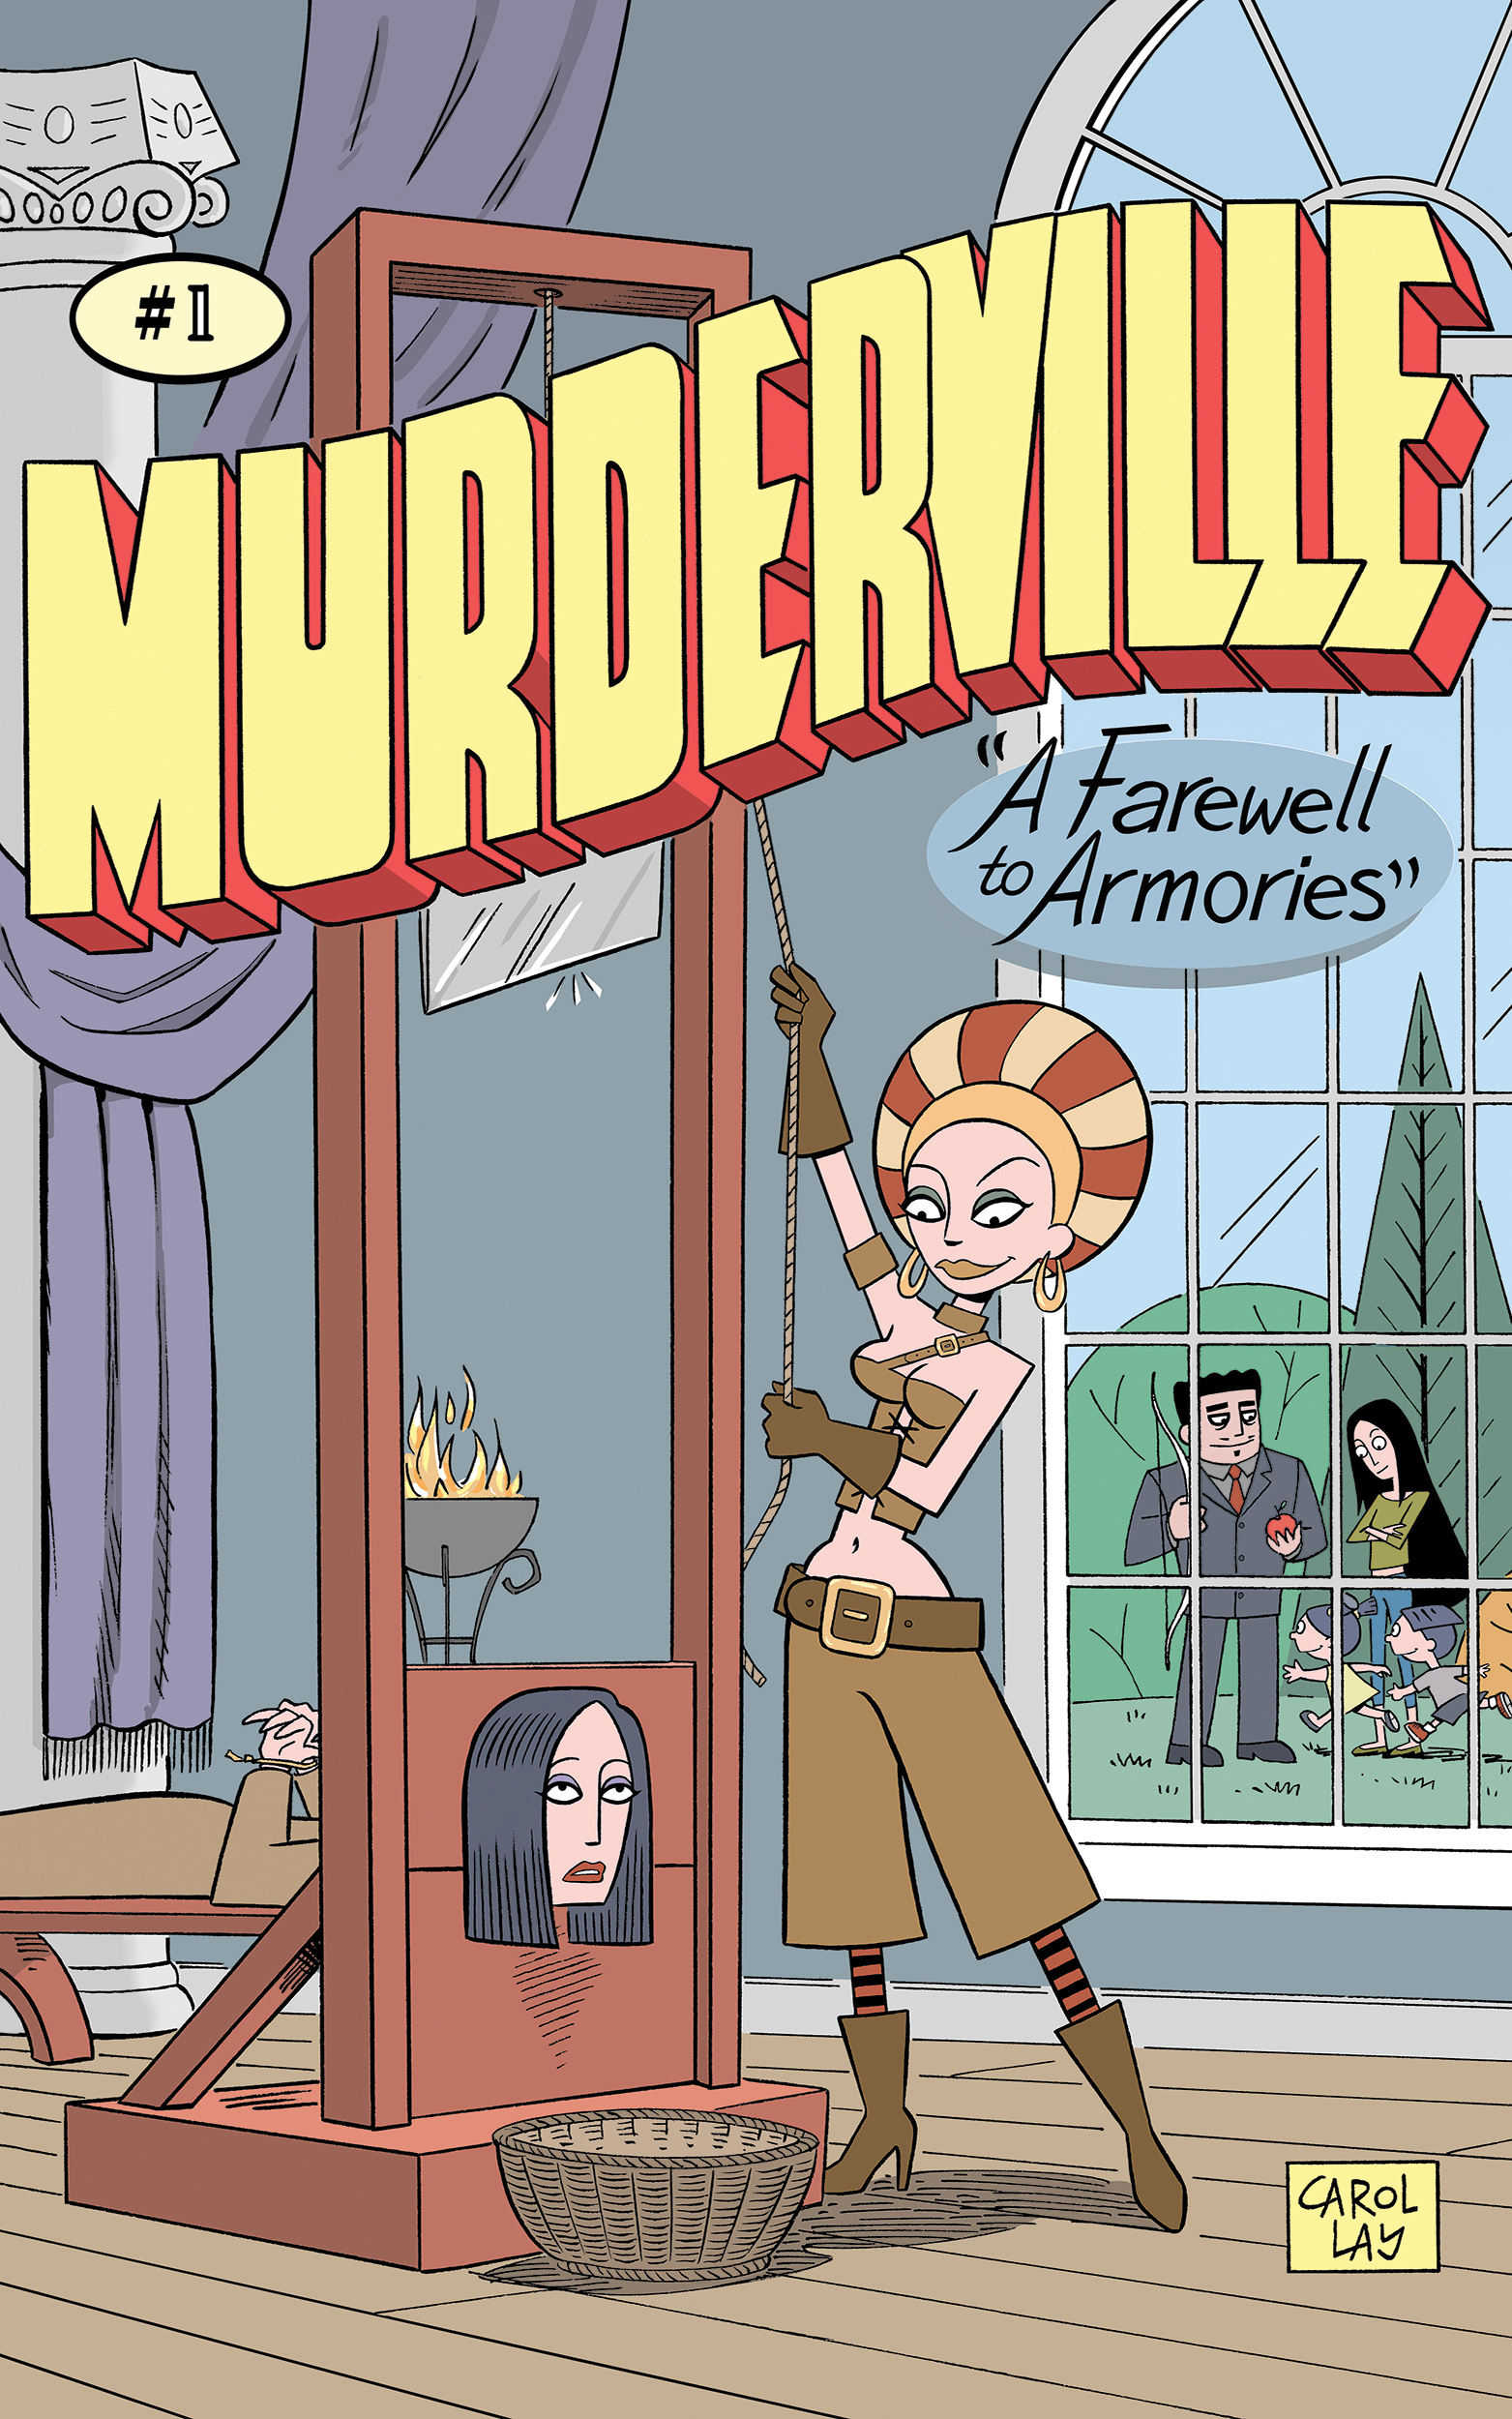 A Farewell to Armories - The second Murderville story features a sexy arms dealer with bad intentions, formatted for digital devices in full color. 29 pages from Waylay Books, 2016.